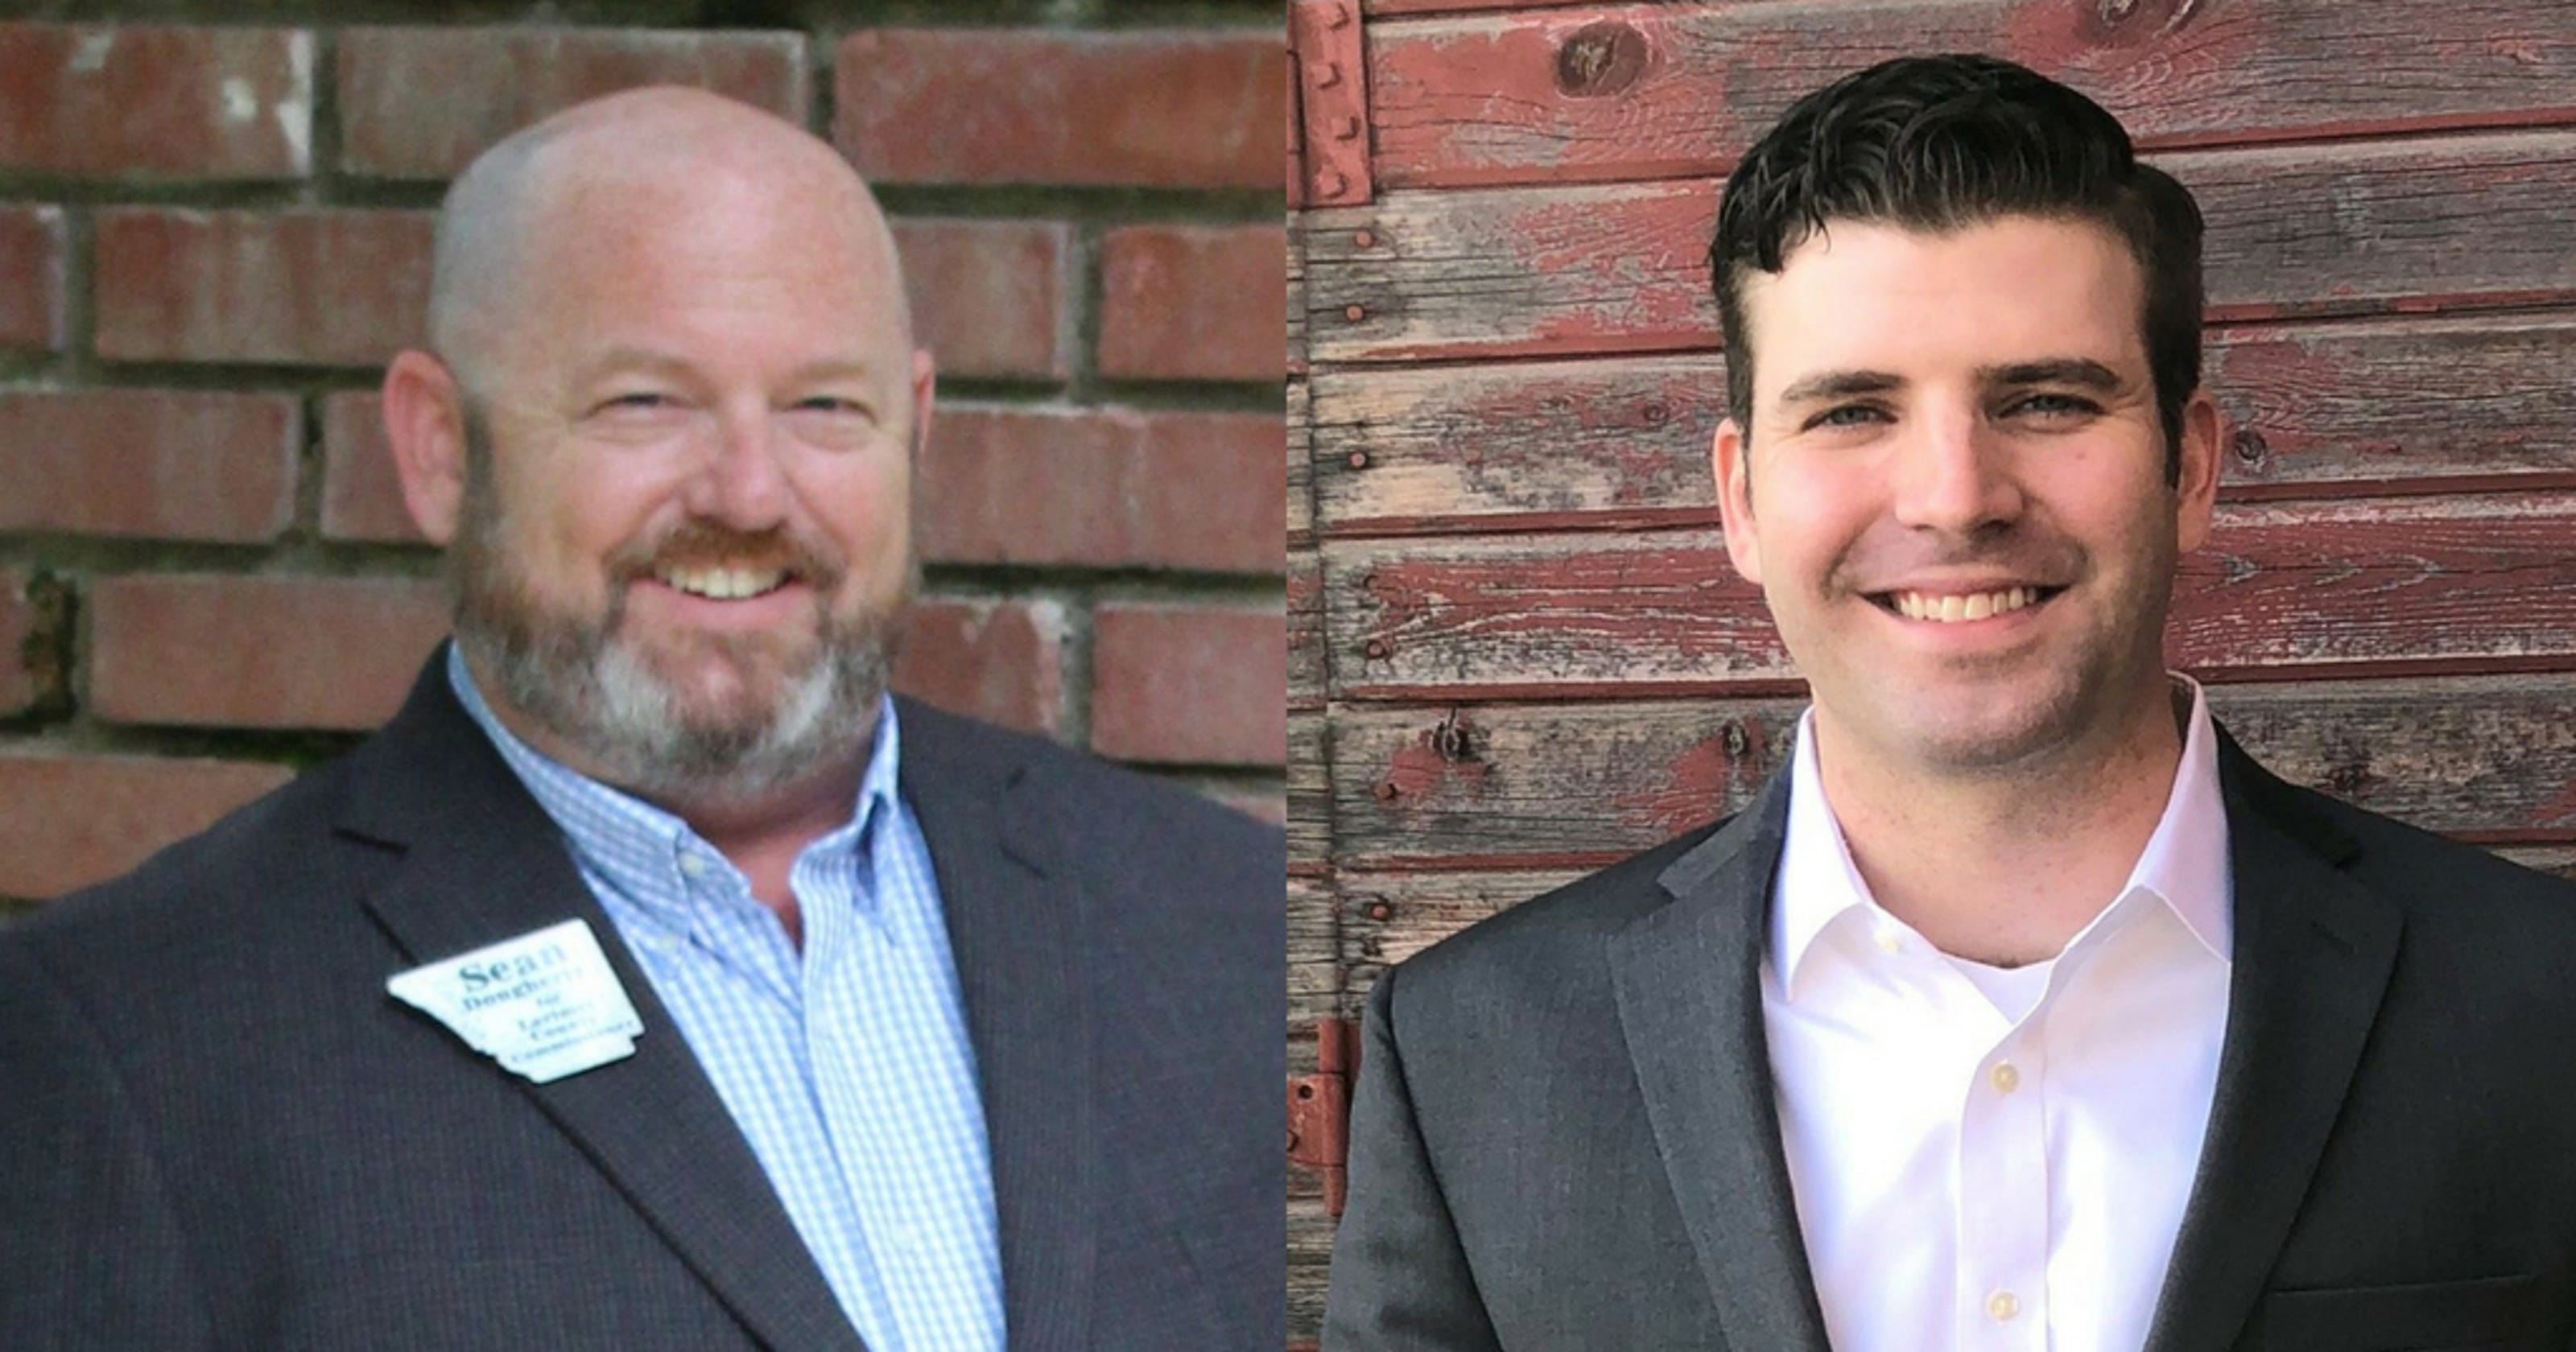 Dougherty, Kintzley seek GOP nomination for Lairmer County Commission